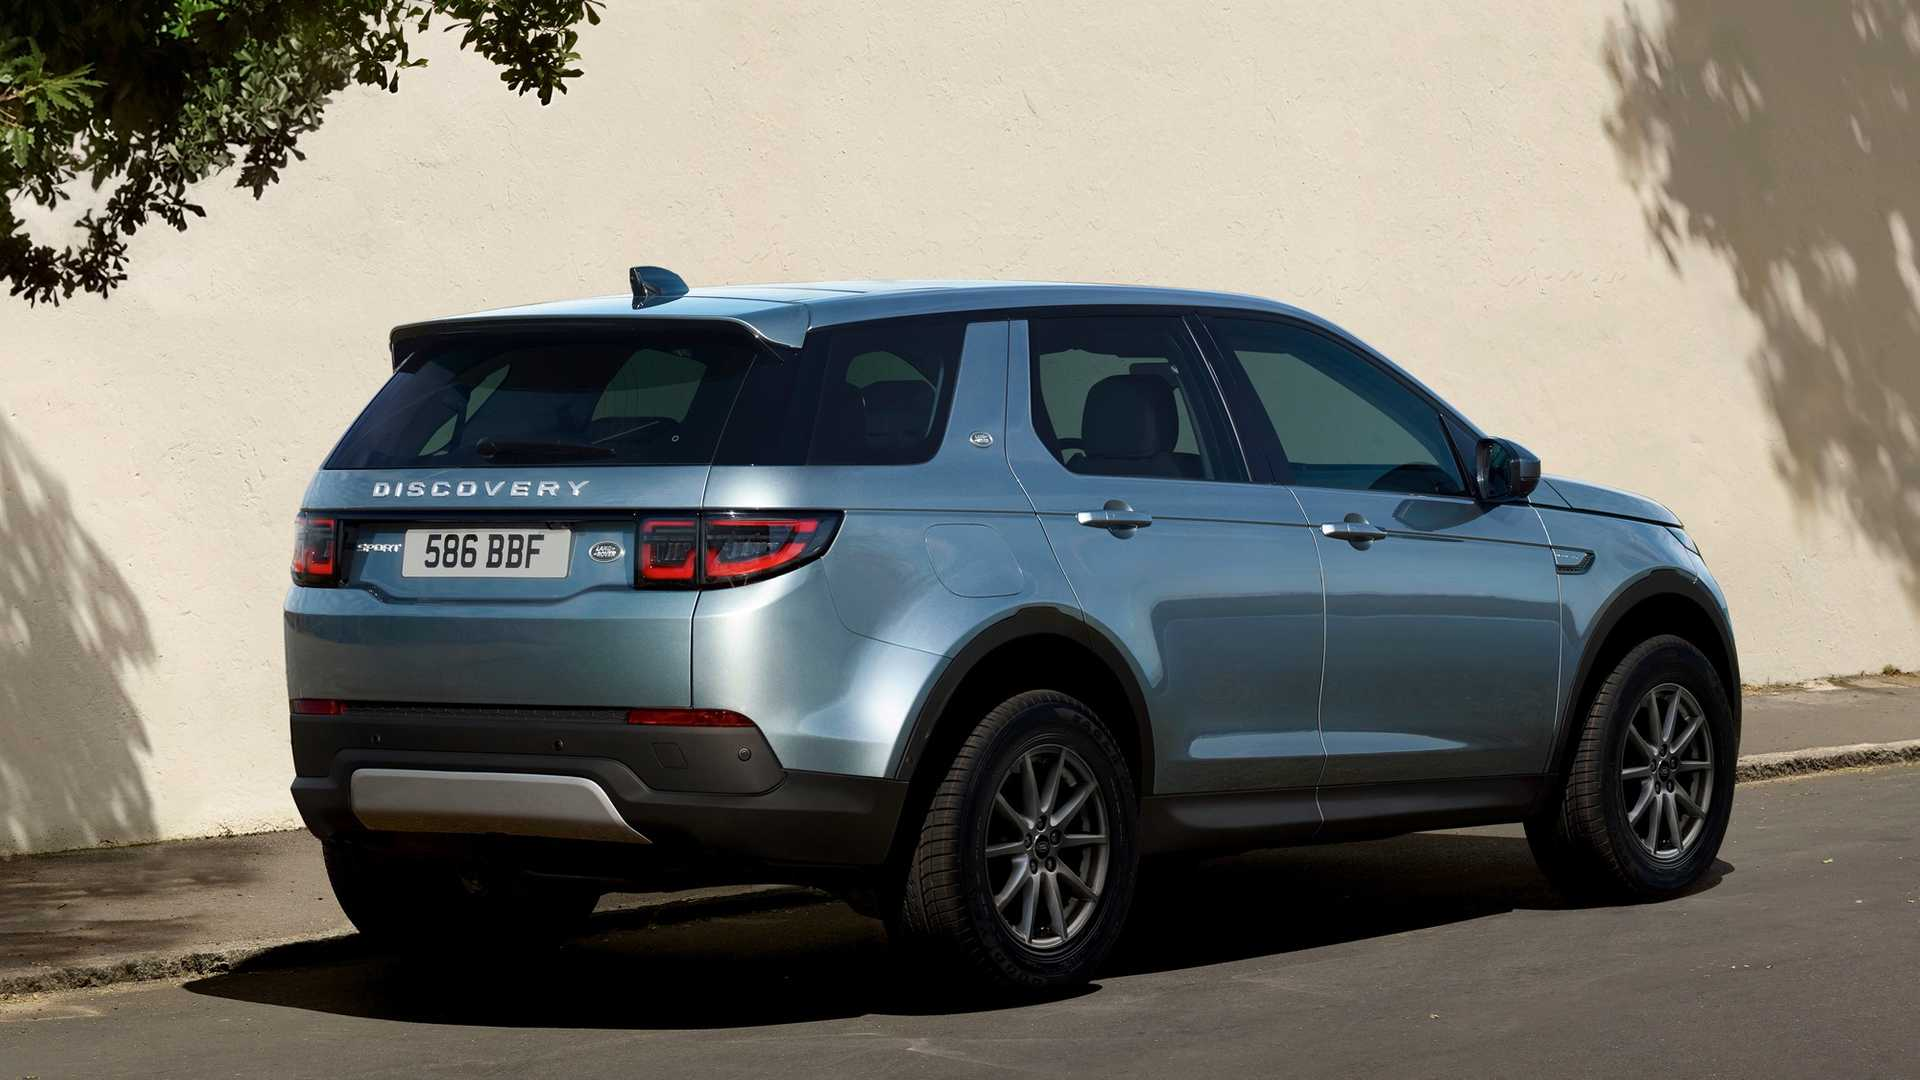 2020-land-rover-discovery-sport (32).jpg